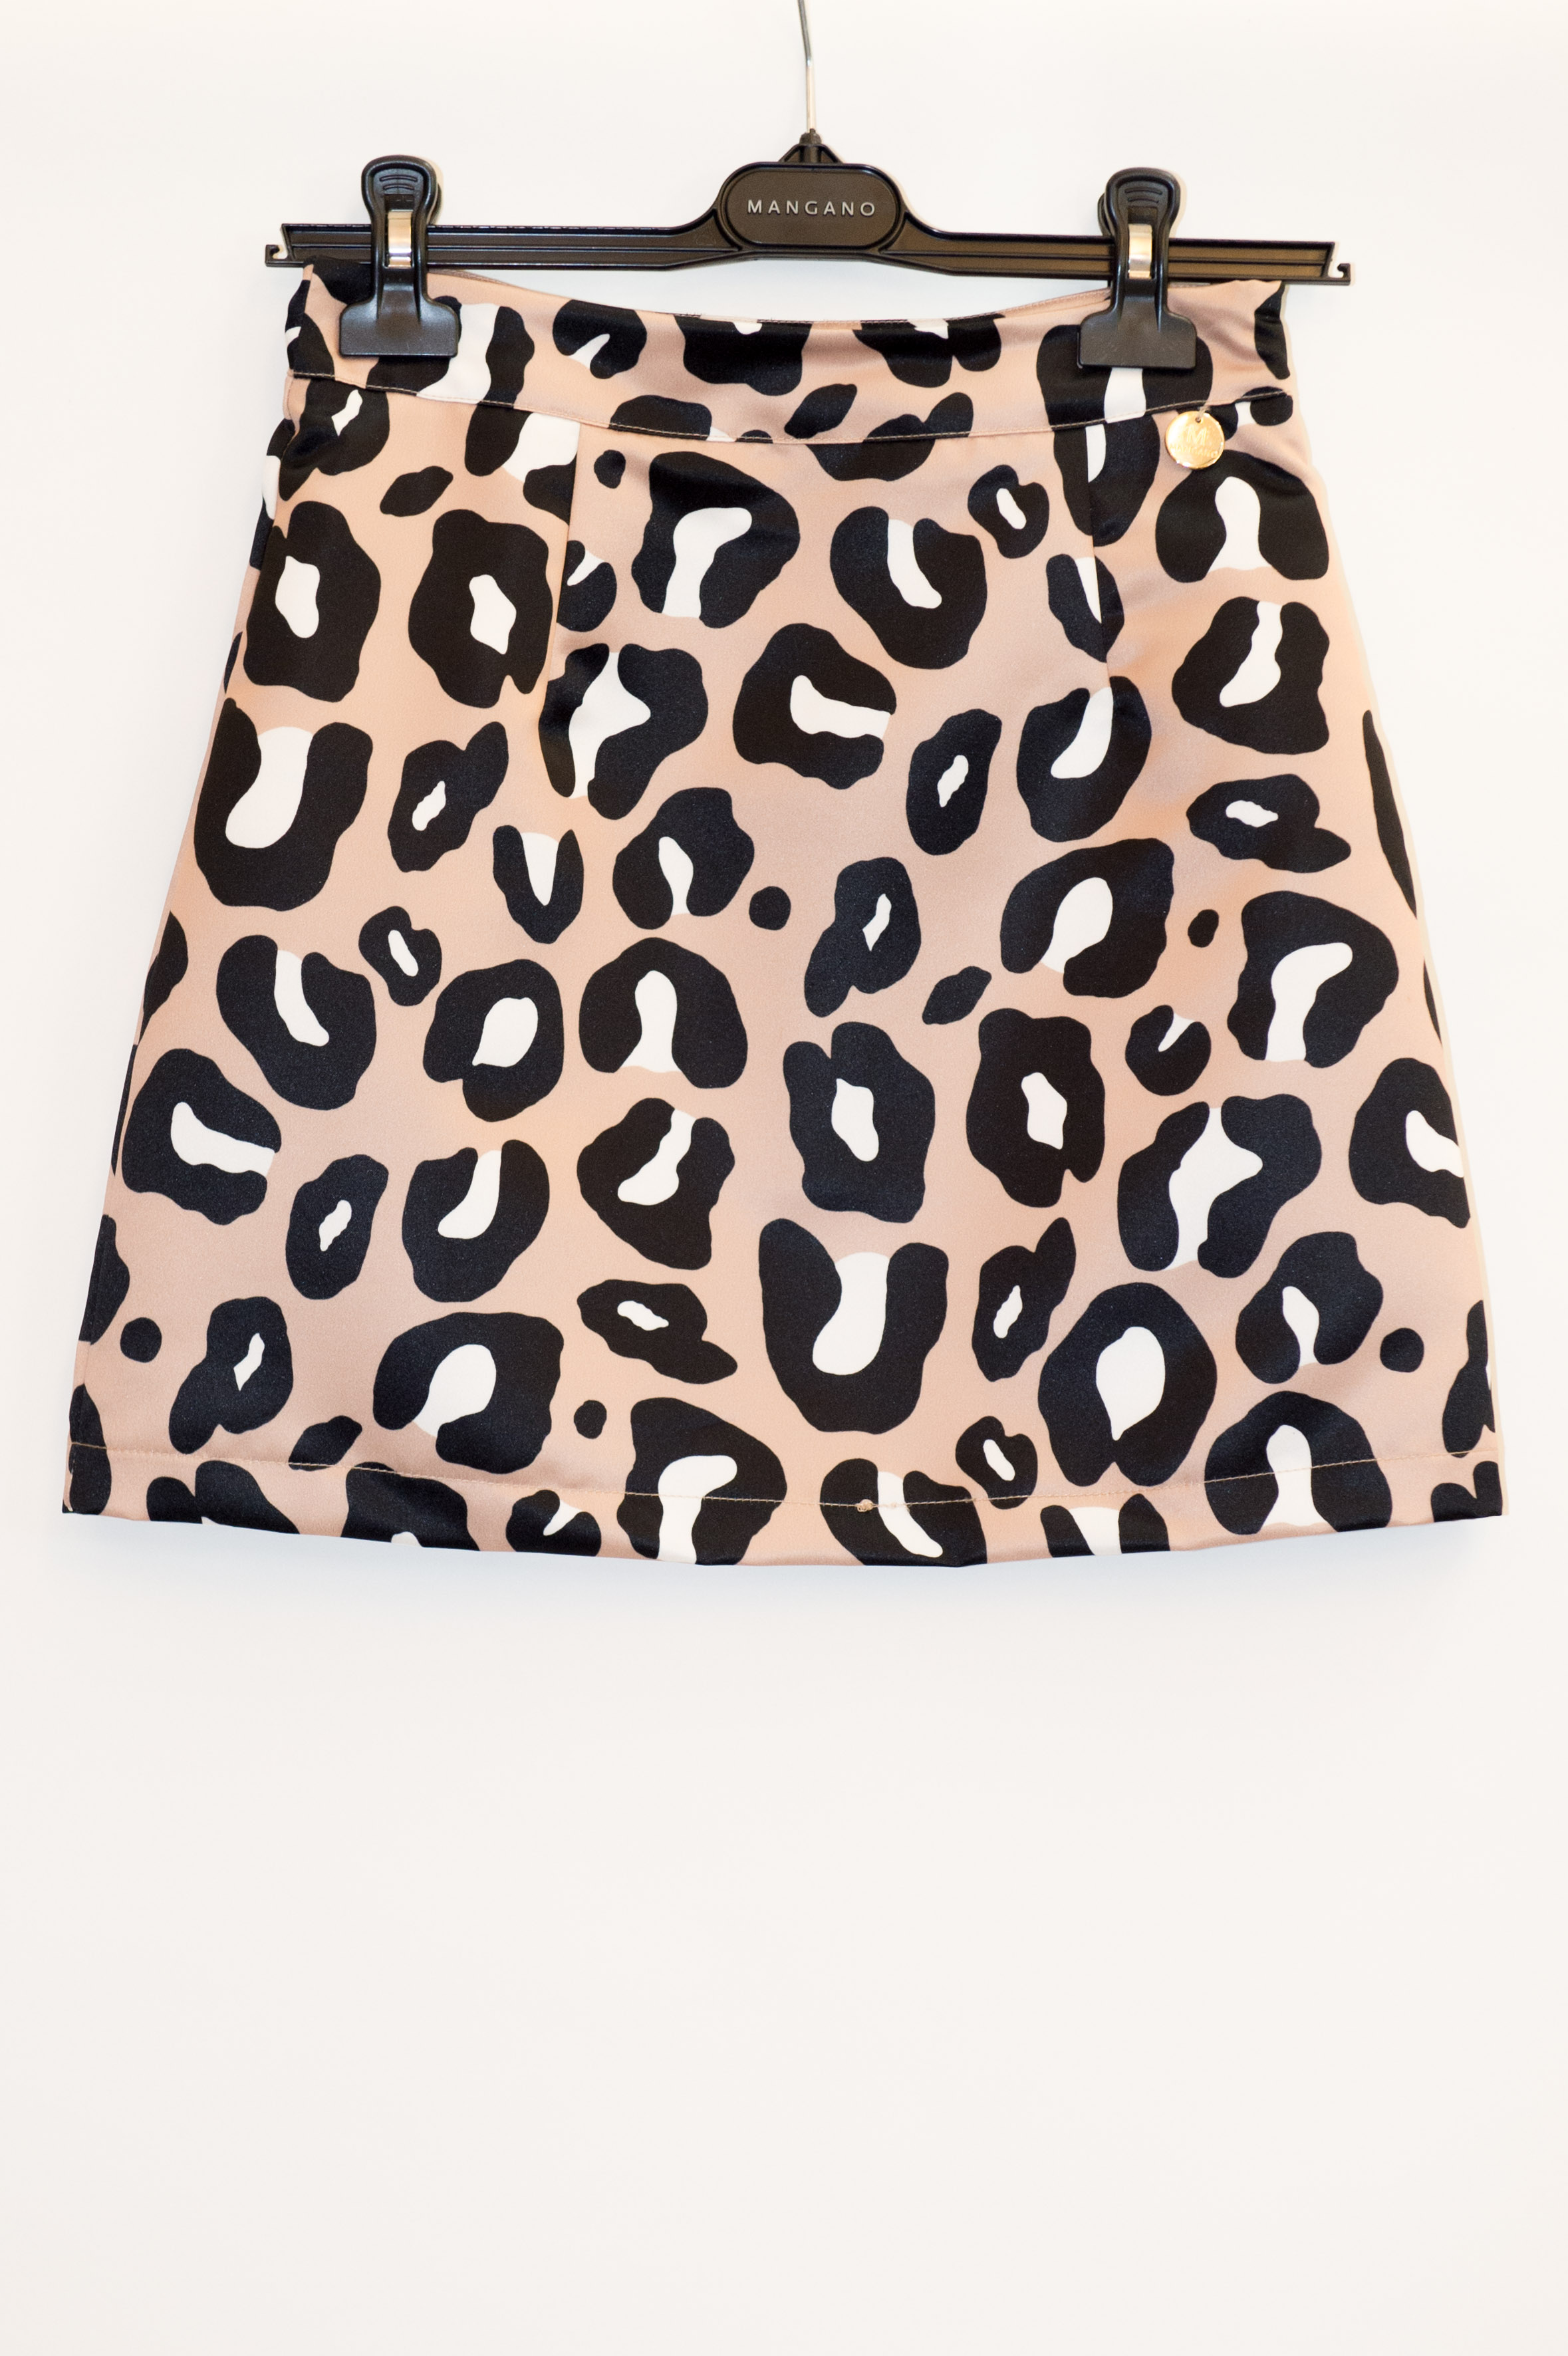 Cheetah skirt Mangano